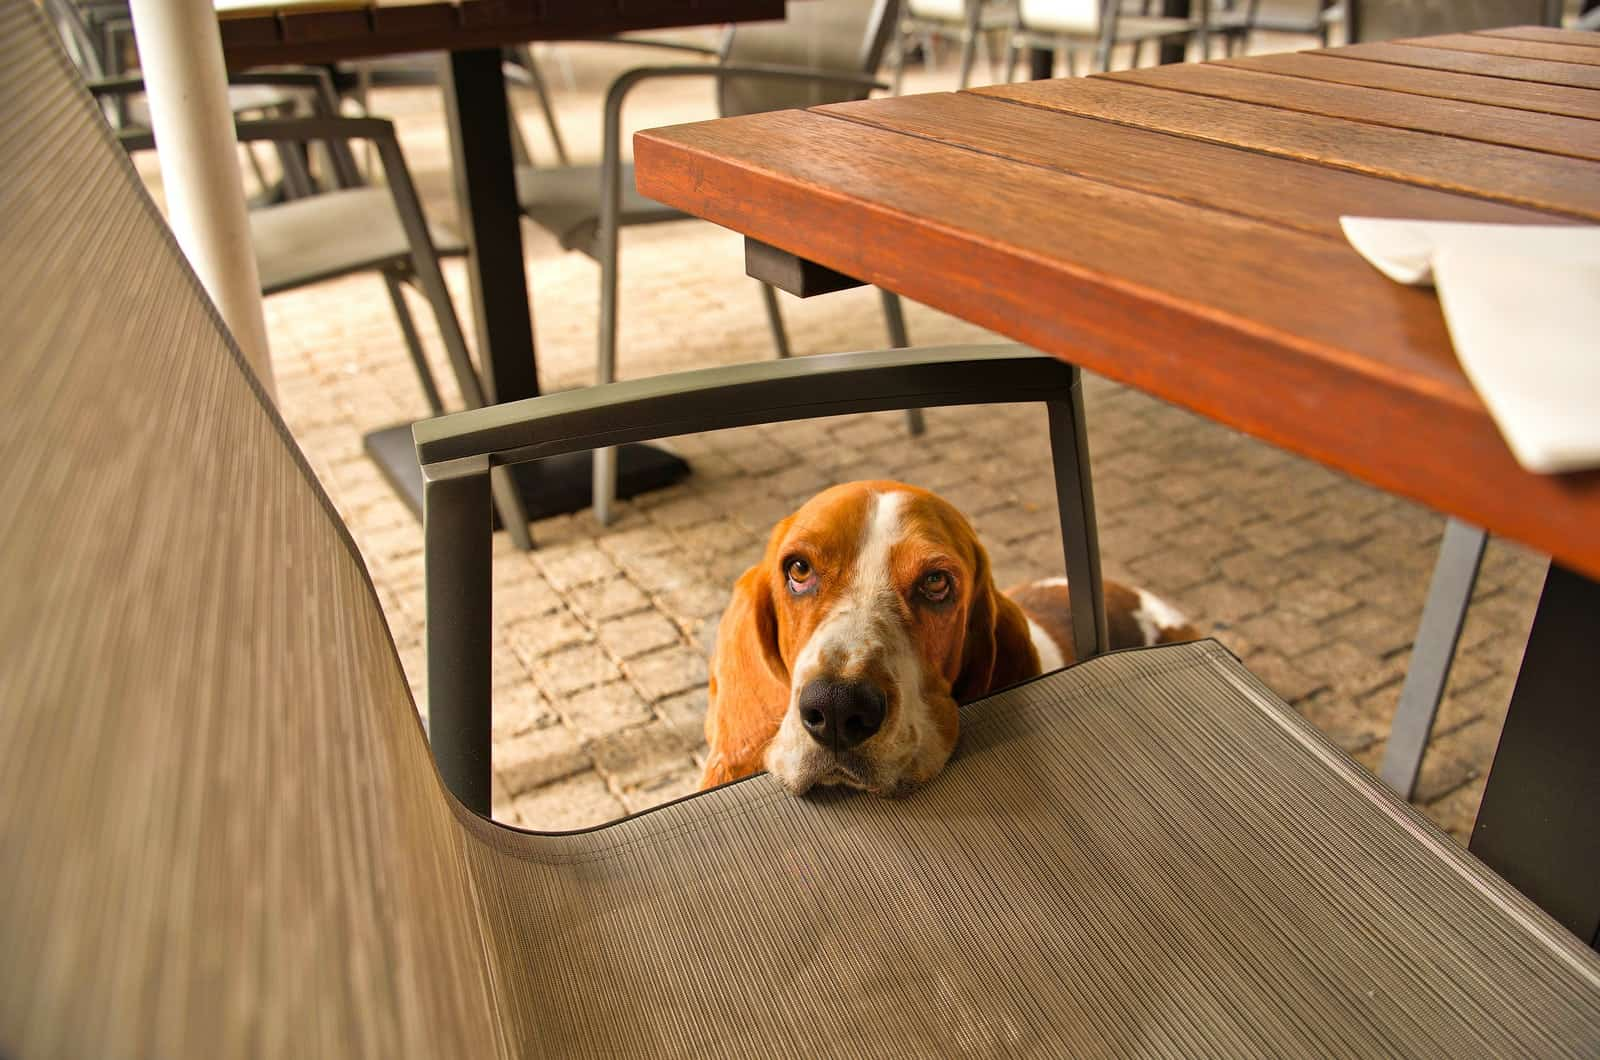 basset hound resting on a chair